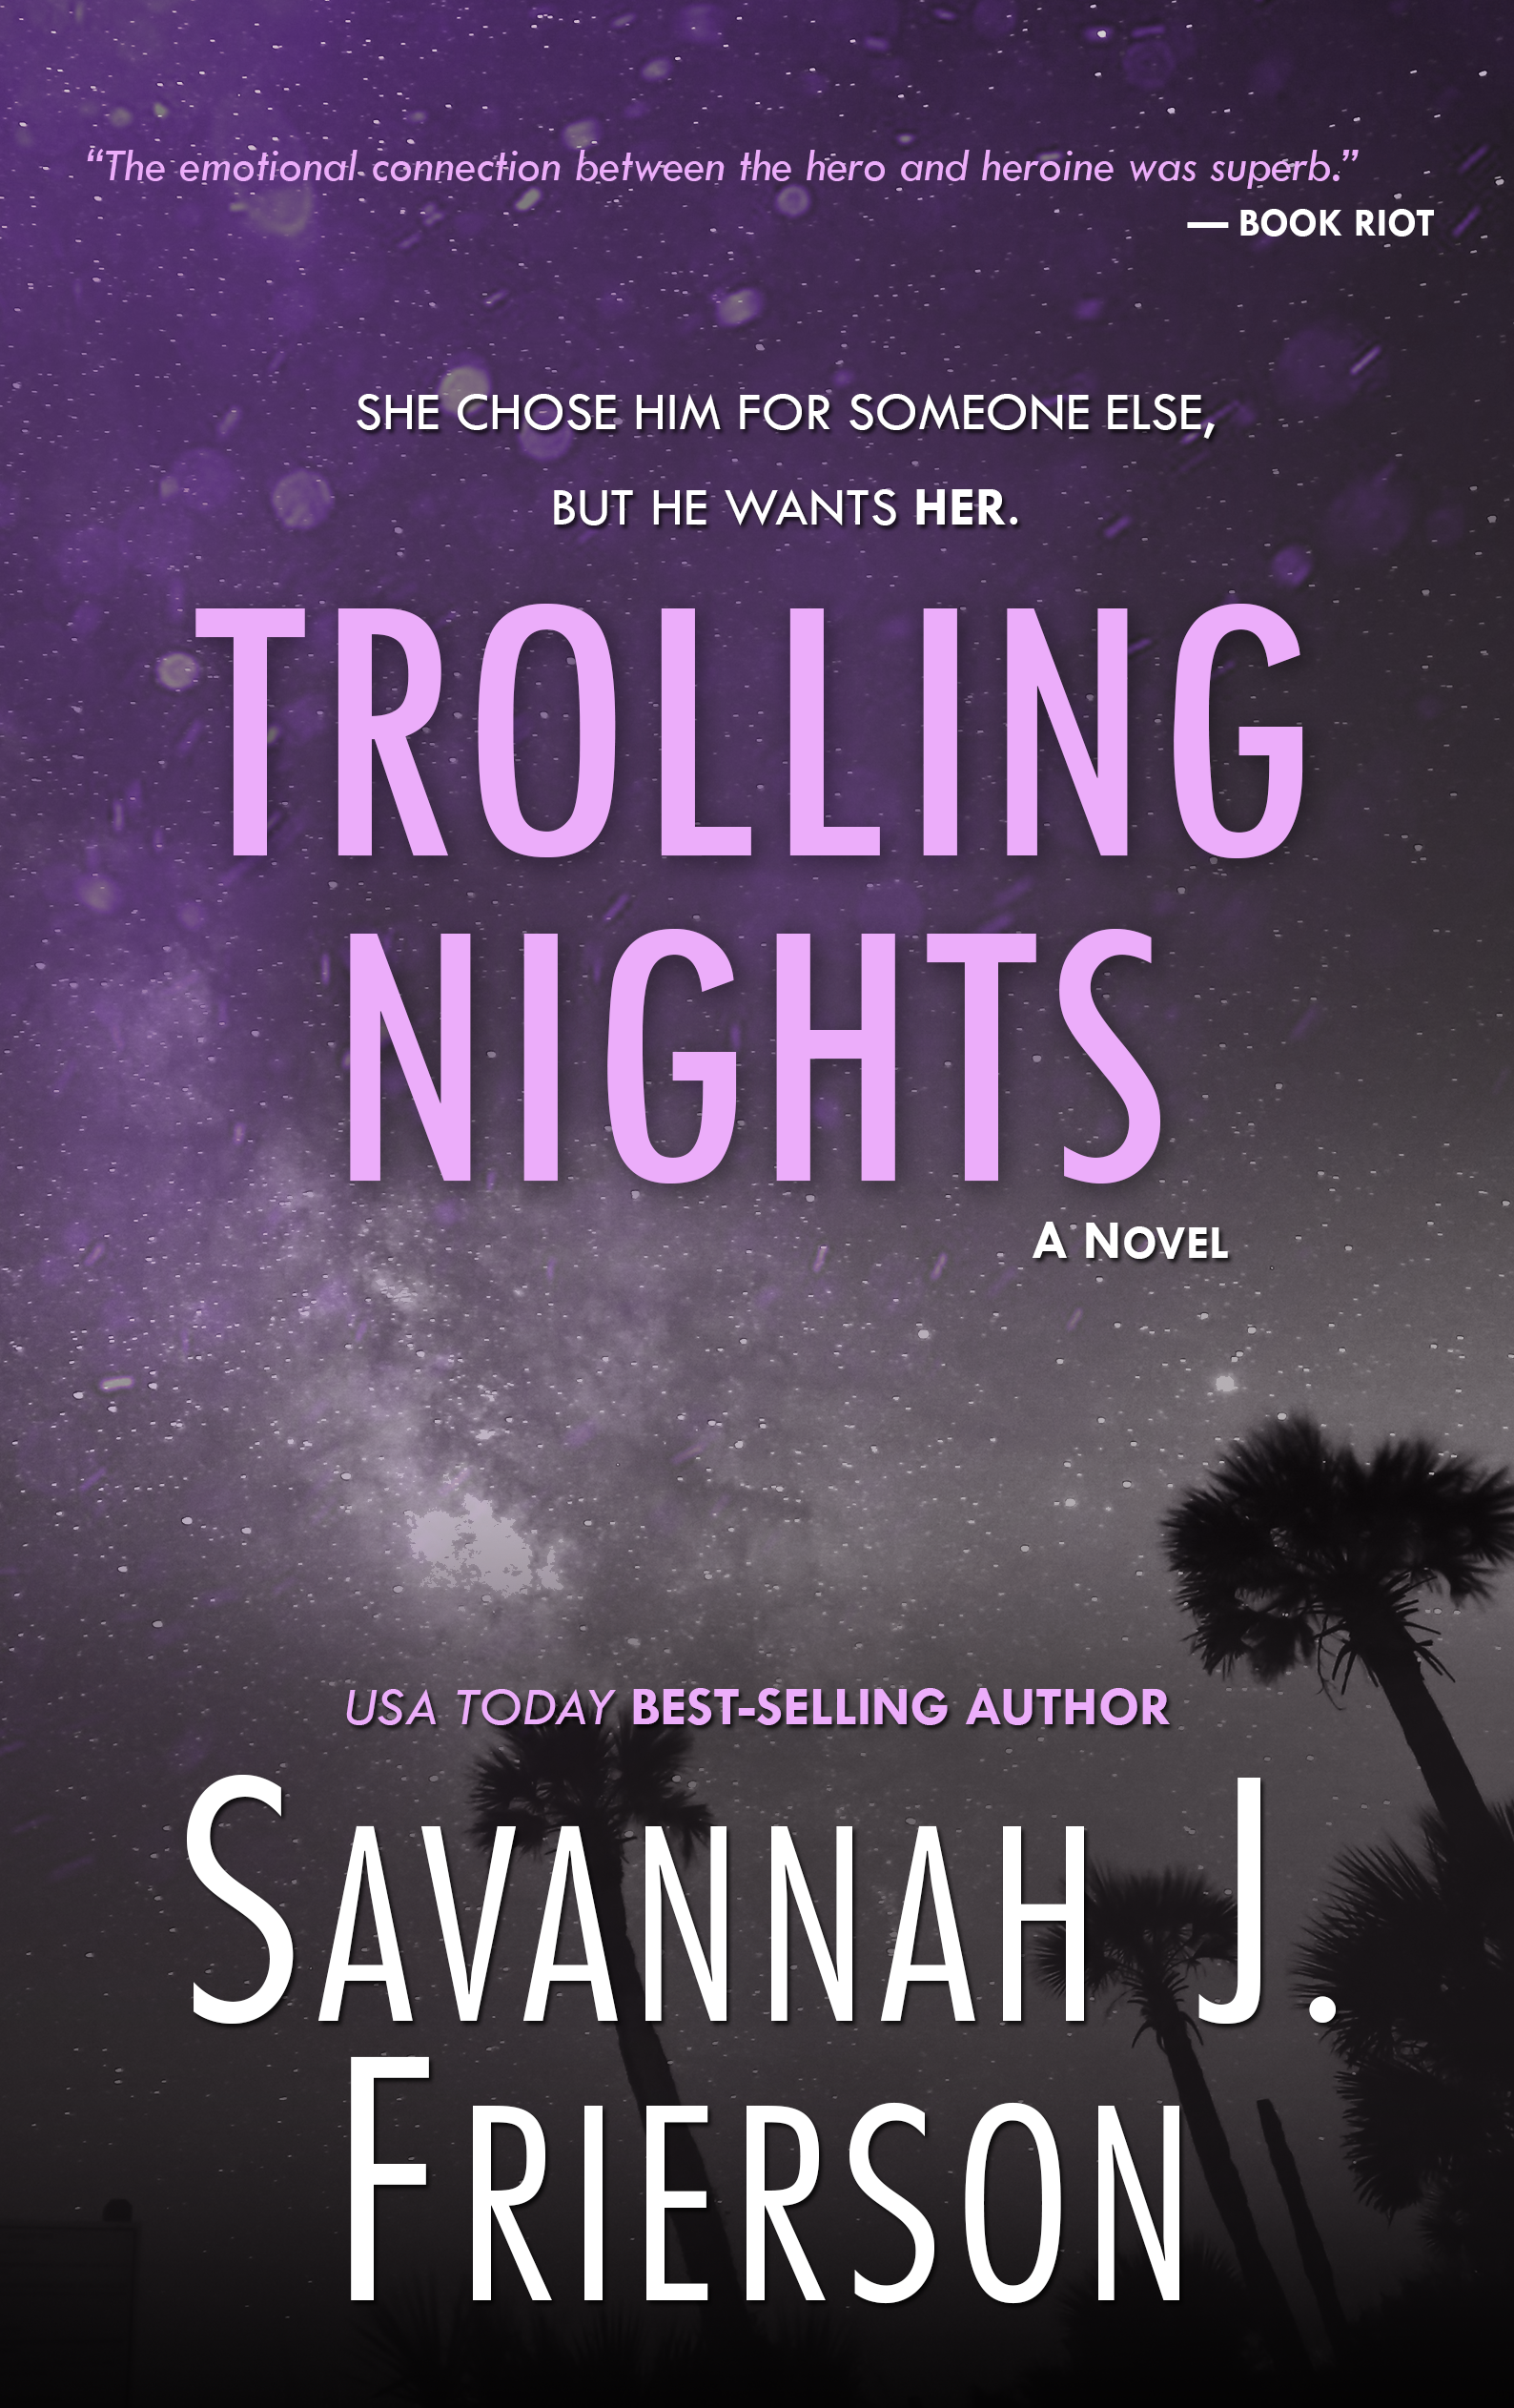 Trolling Nights cover